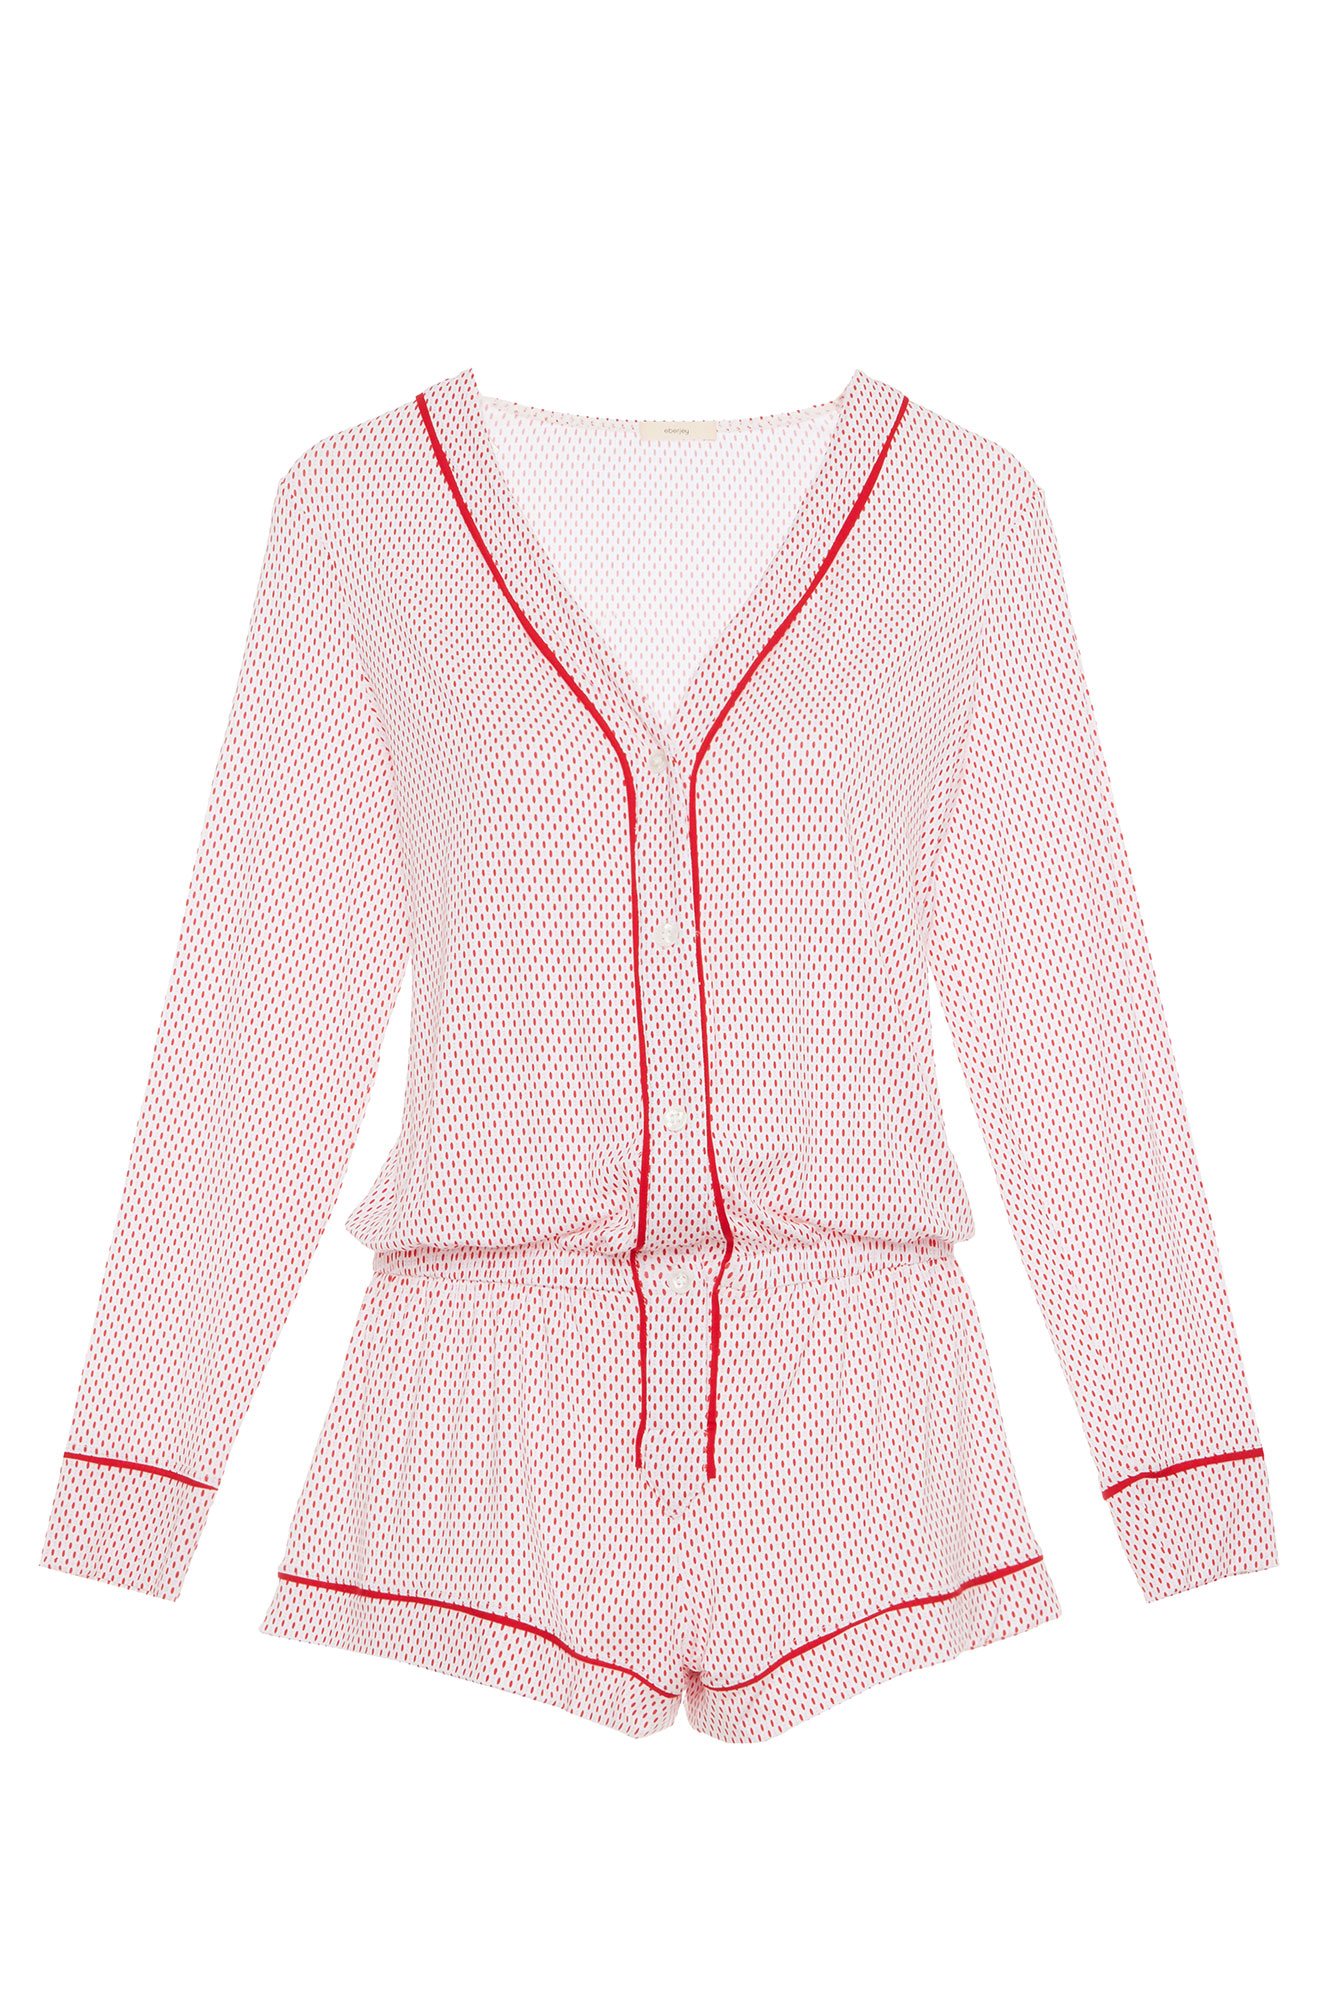 Valentine's Day Gift Guide 2019: Beauty and Fashion Ideas for the Lady in Your Life - This flirty romper is equal parts cozy and cute. $111, eberjay.com